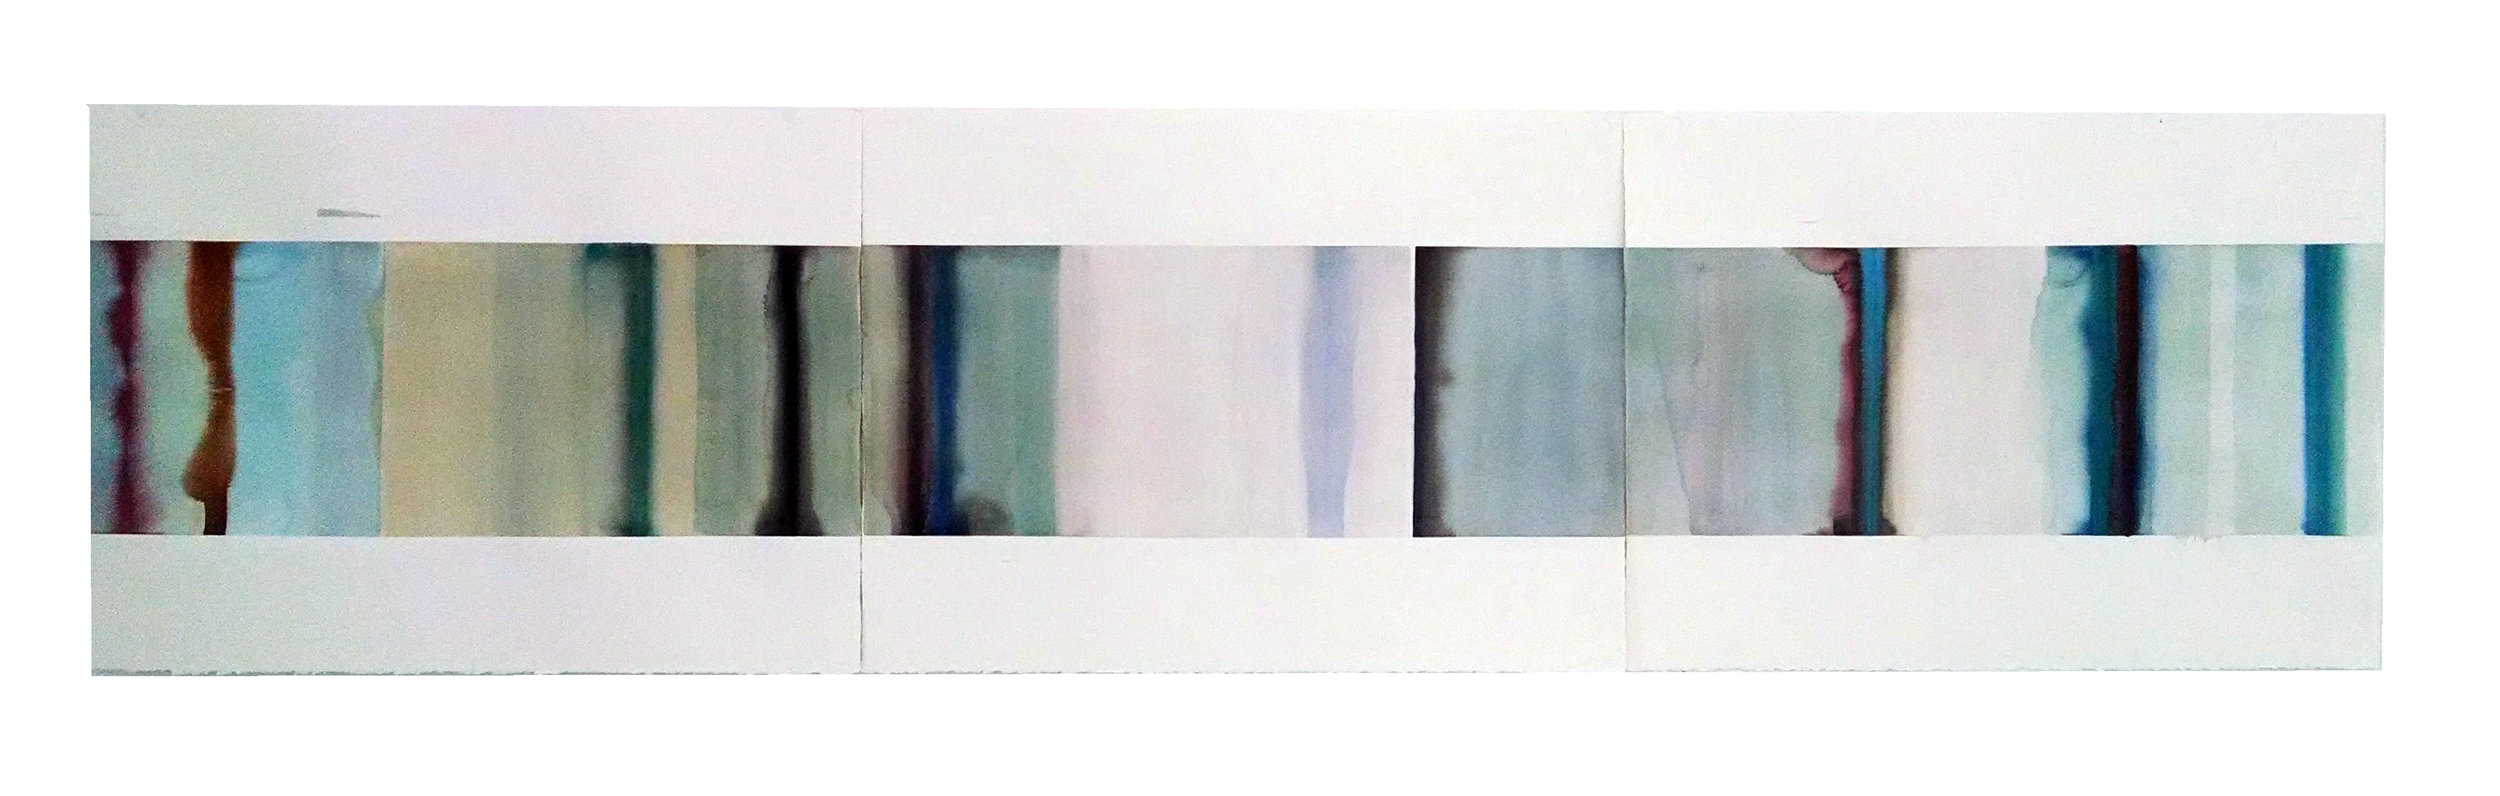 """LSW No.2,  22"""" x 90"""", watercolor on paper, 2015"""